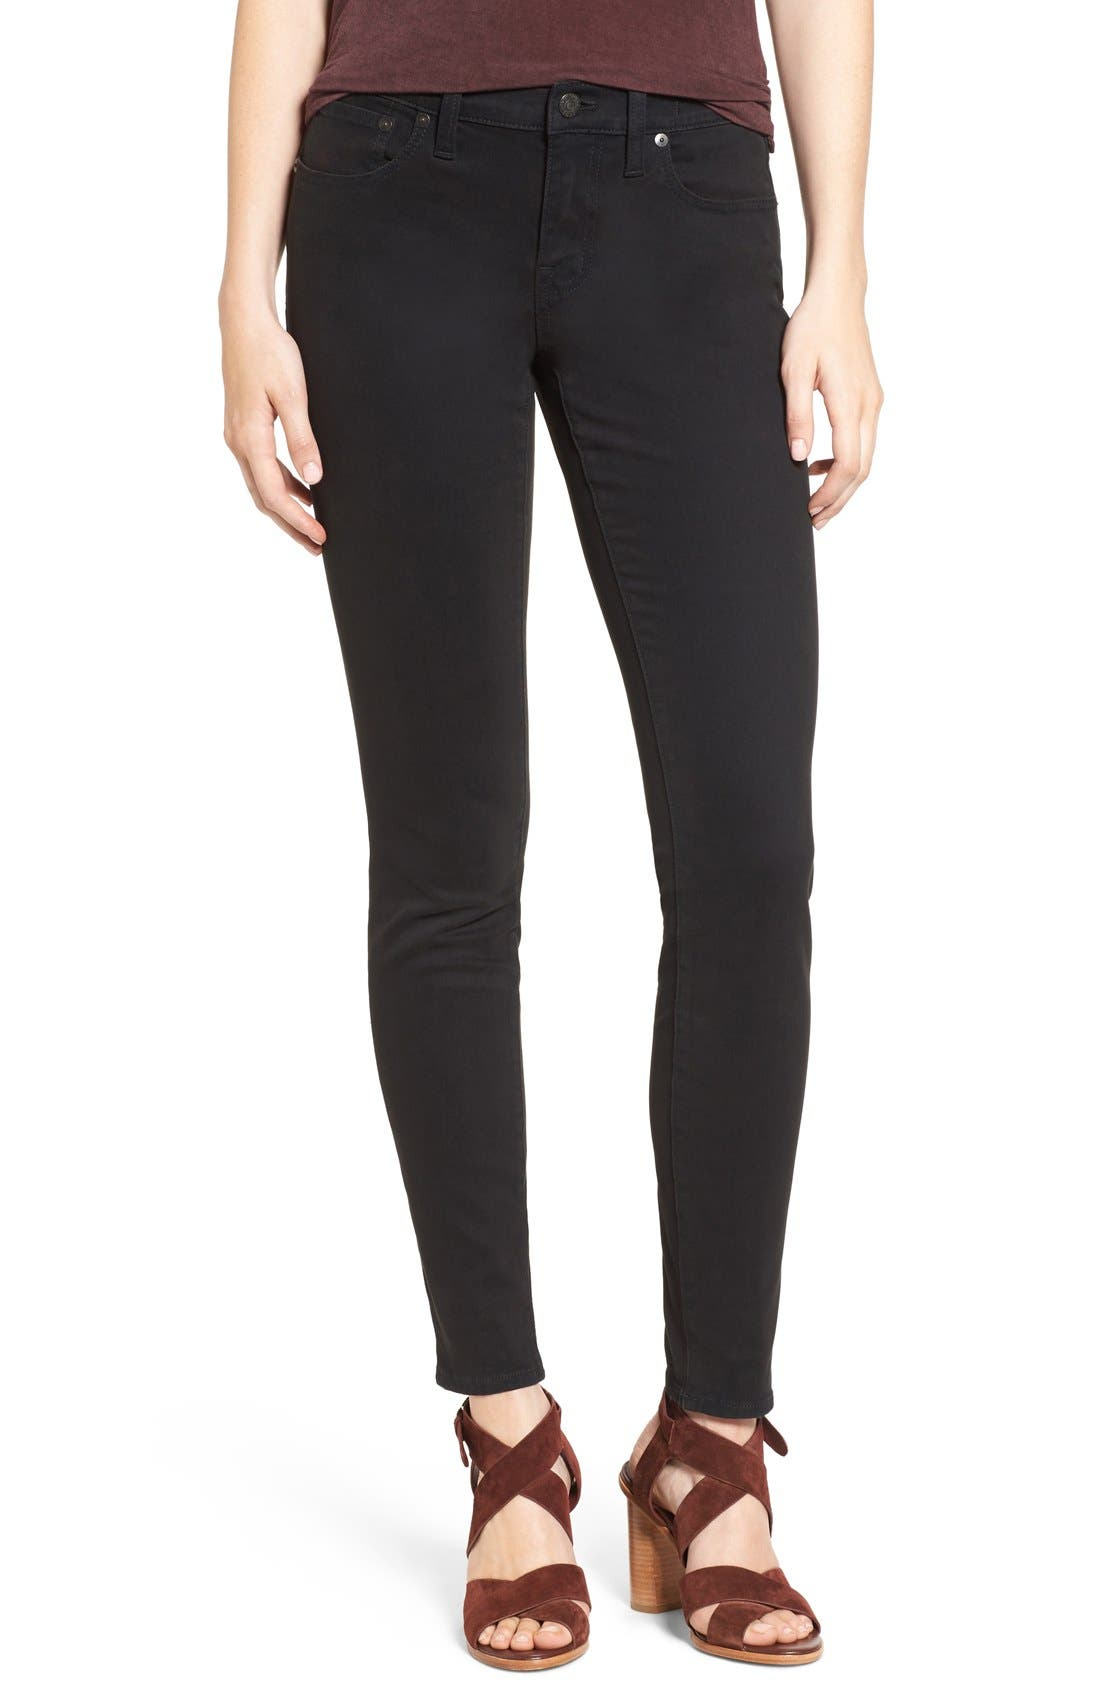 Alternate Image 1 Selected - Madewell Garment Dyed Skinny Jeans